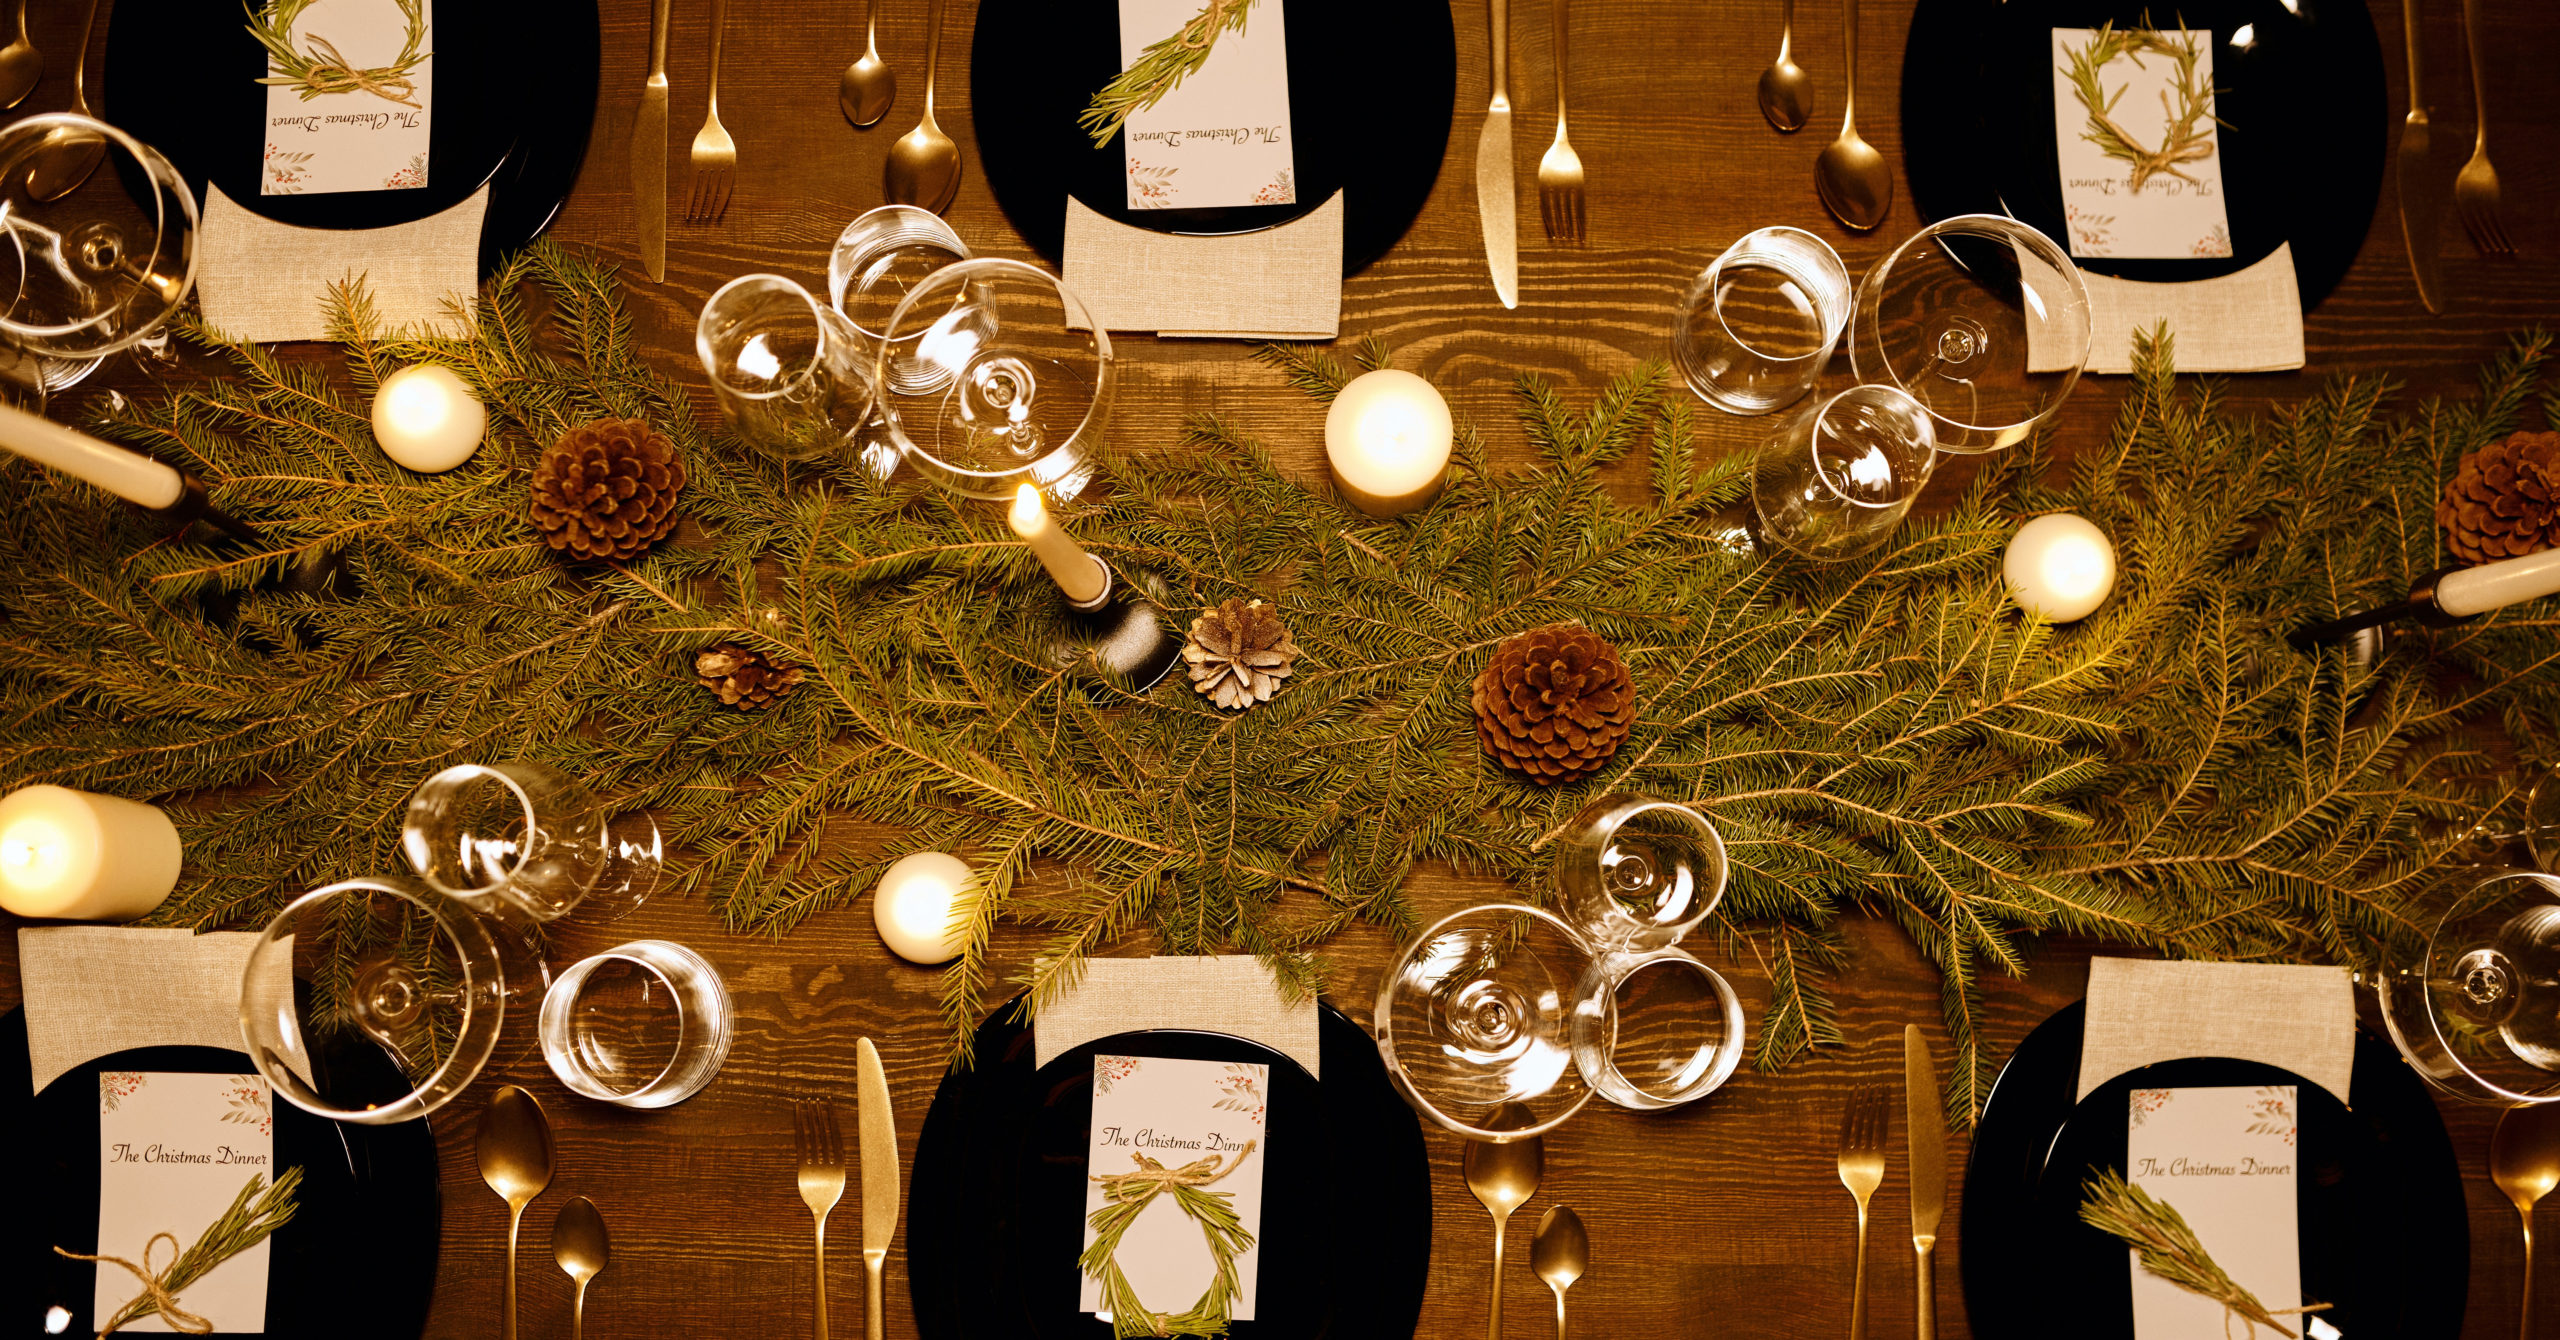 Creative Holiday Centerpiece Ideas That Are Easy On Your Wallet